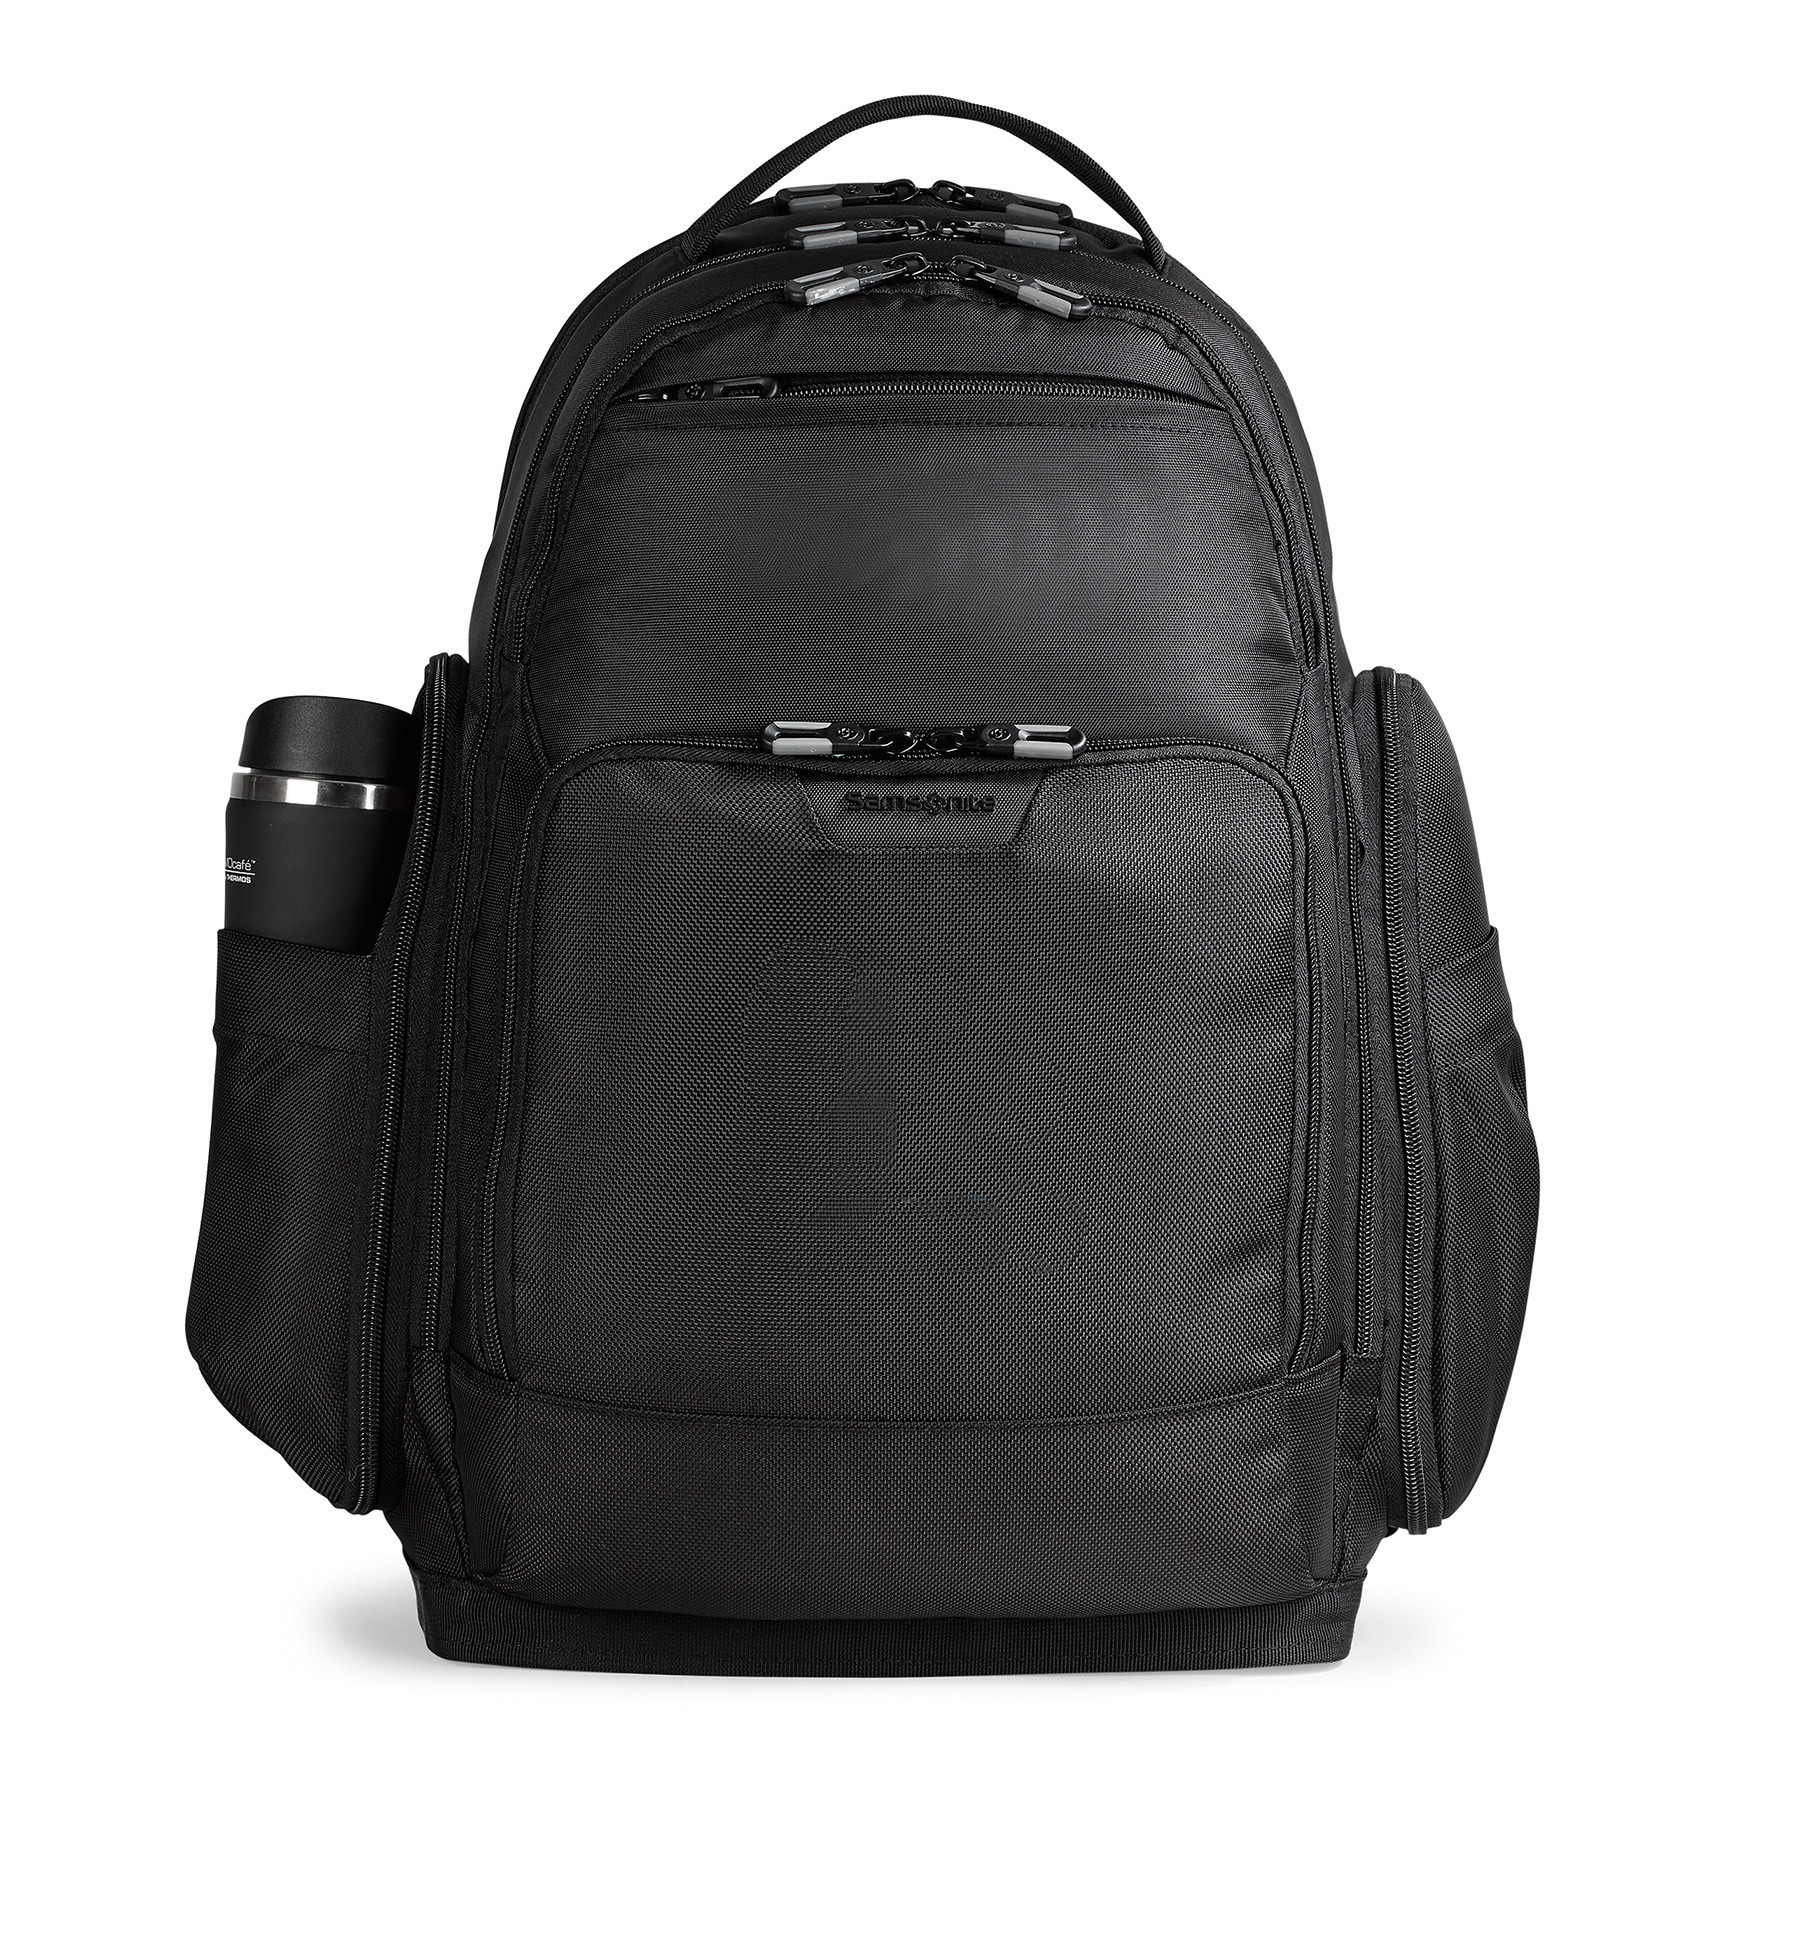 Samsonite 95076 - HQ Warrior Computer Backpack